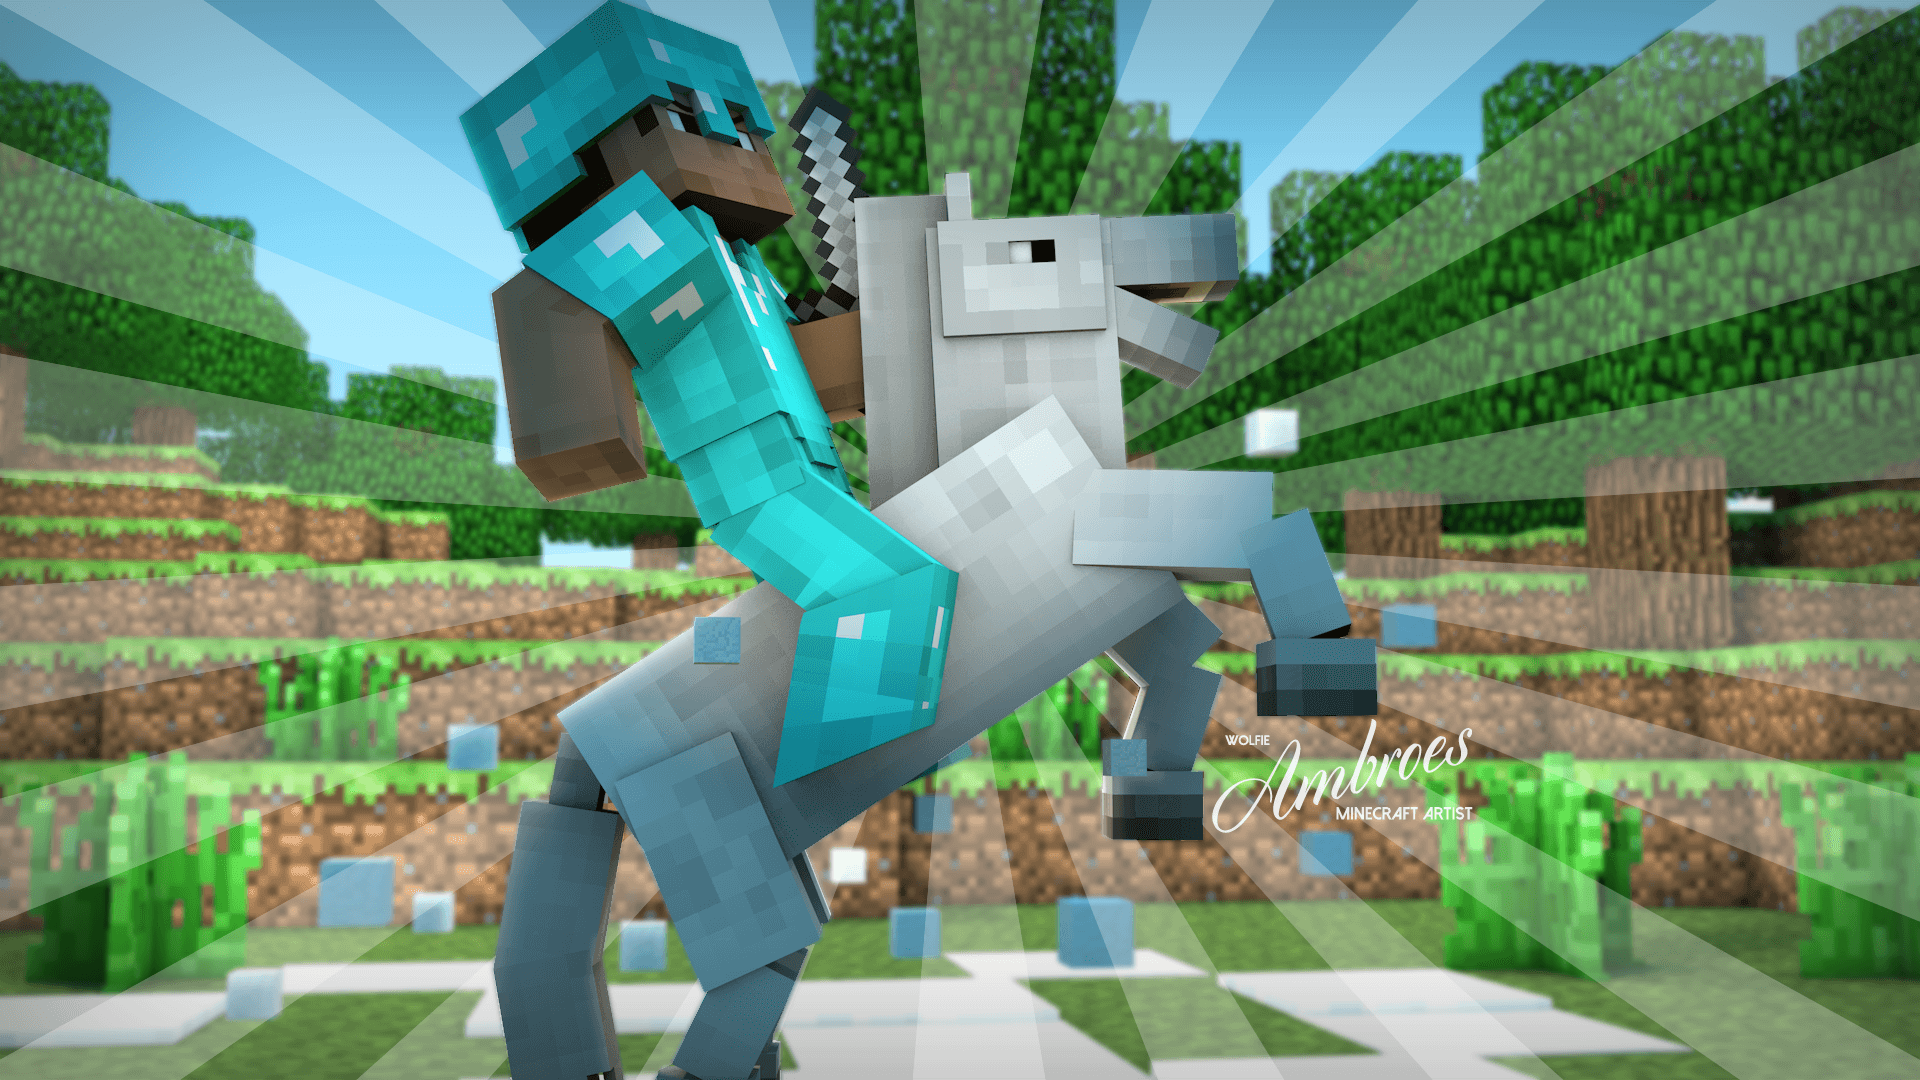 Hd Glacial Steed 3D Minecraft Wallpaper 1920x1080